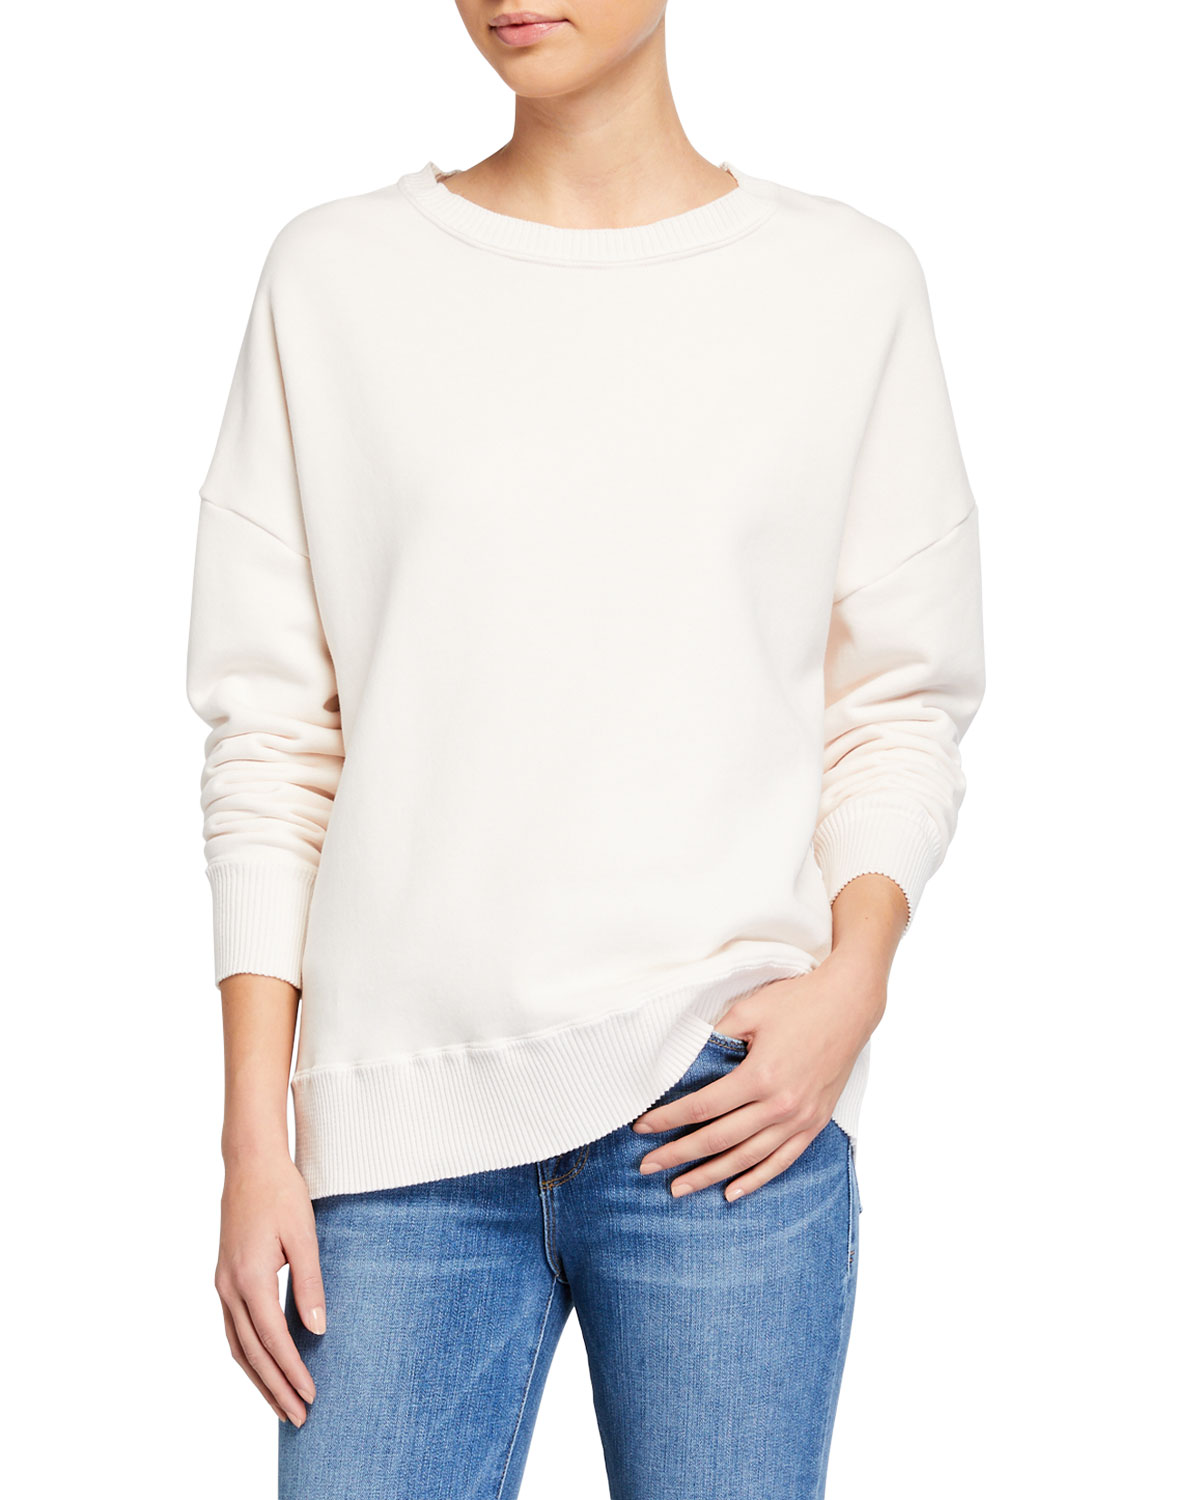 Frank & Eileen Tee Lab Ribbed Knit Cotton Fleece Sweatshirt